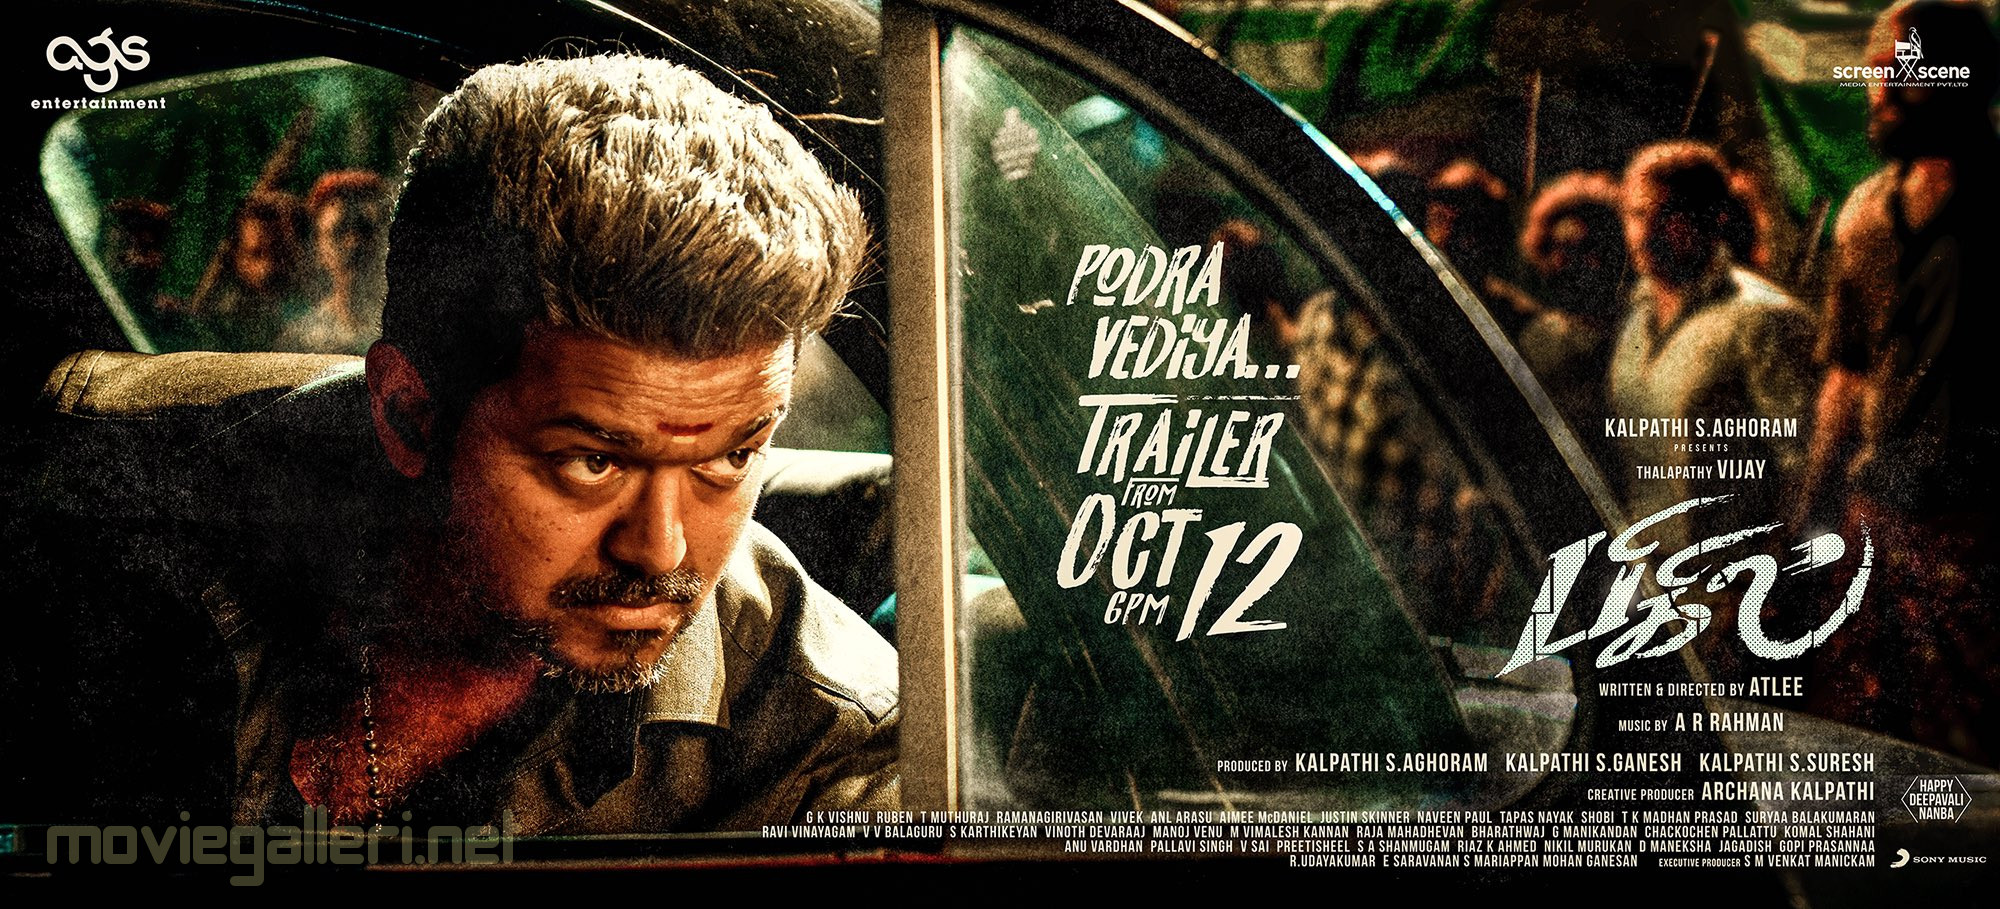 Thalapathy Vijay Bigil Movie Trailer Release from Oct 12th Poster HD